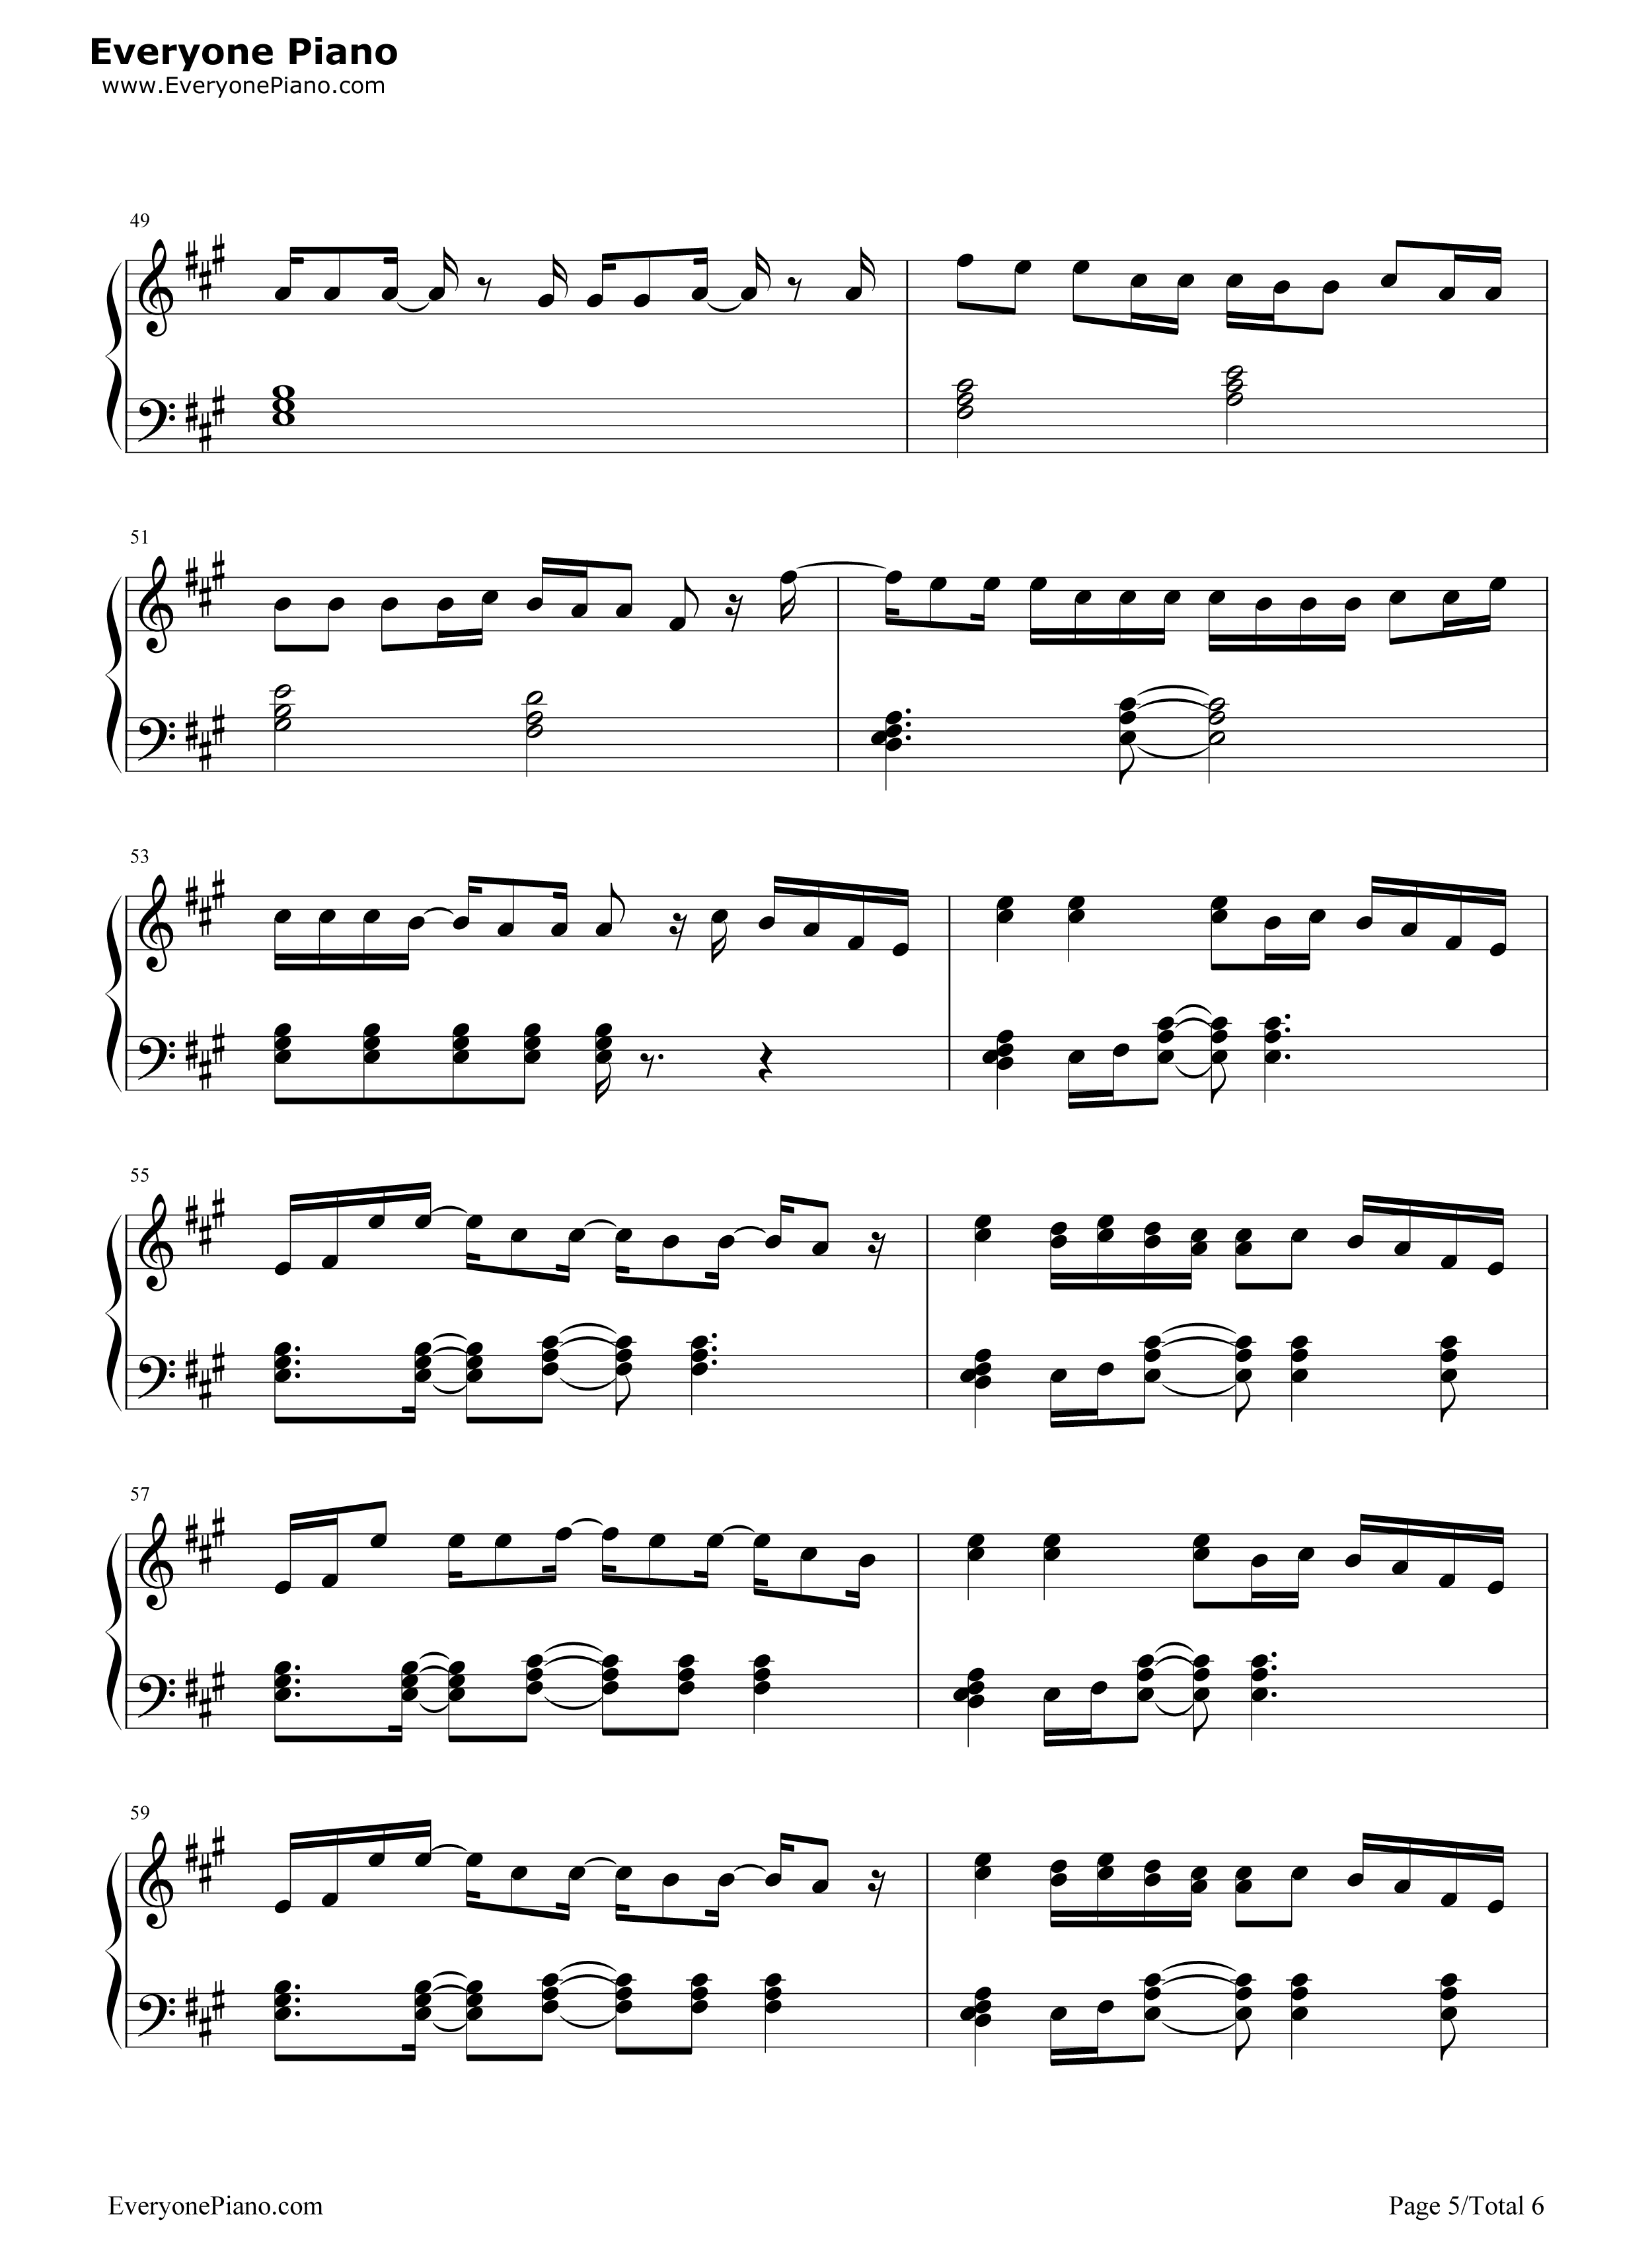 Galway girl ed sheeran stave preview 5 free piano sheet music listen now print sheet galway girl ed sheeran stave preview 5 hexwebz Images